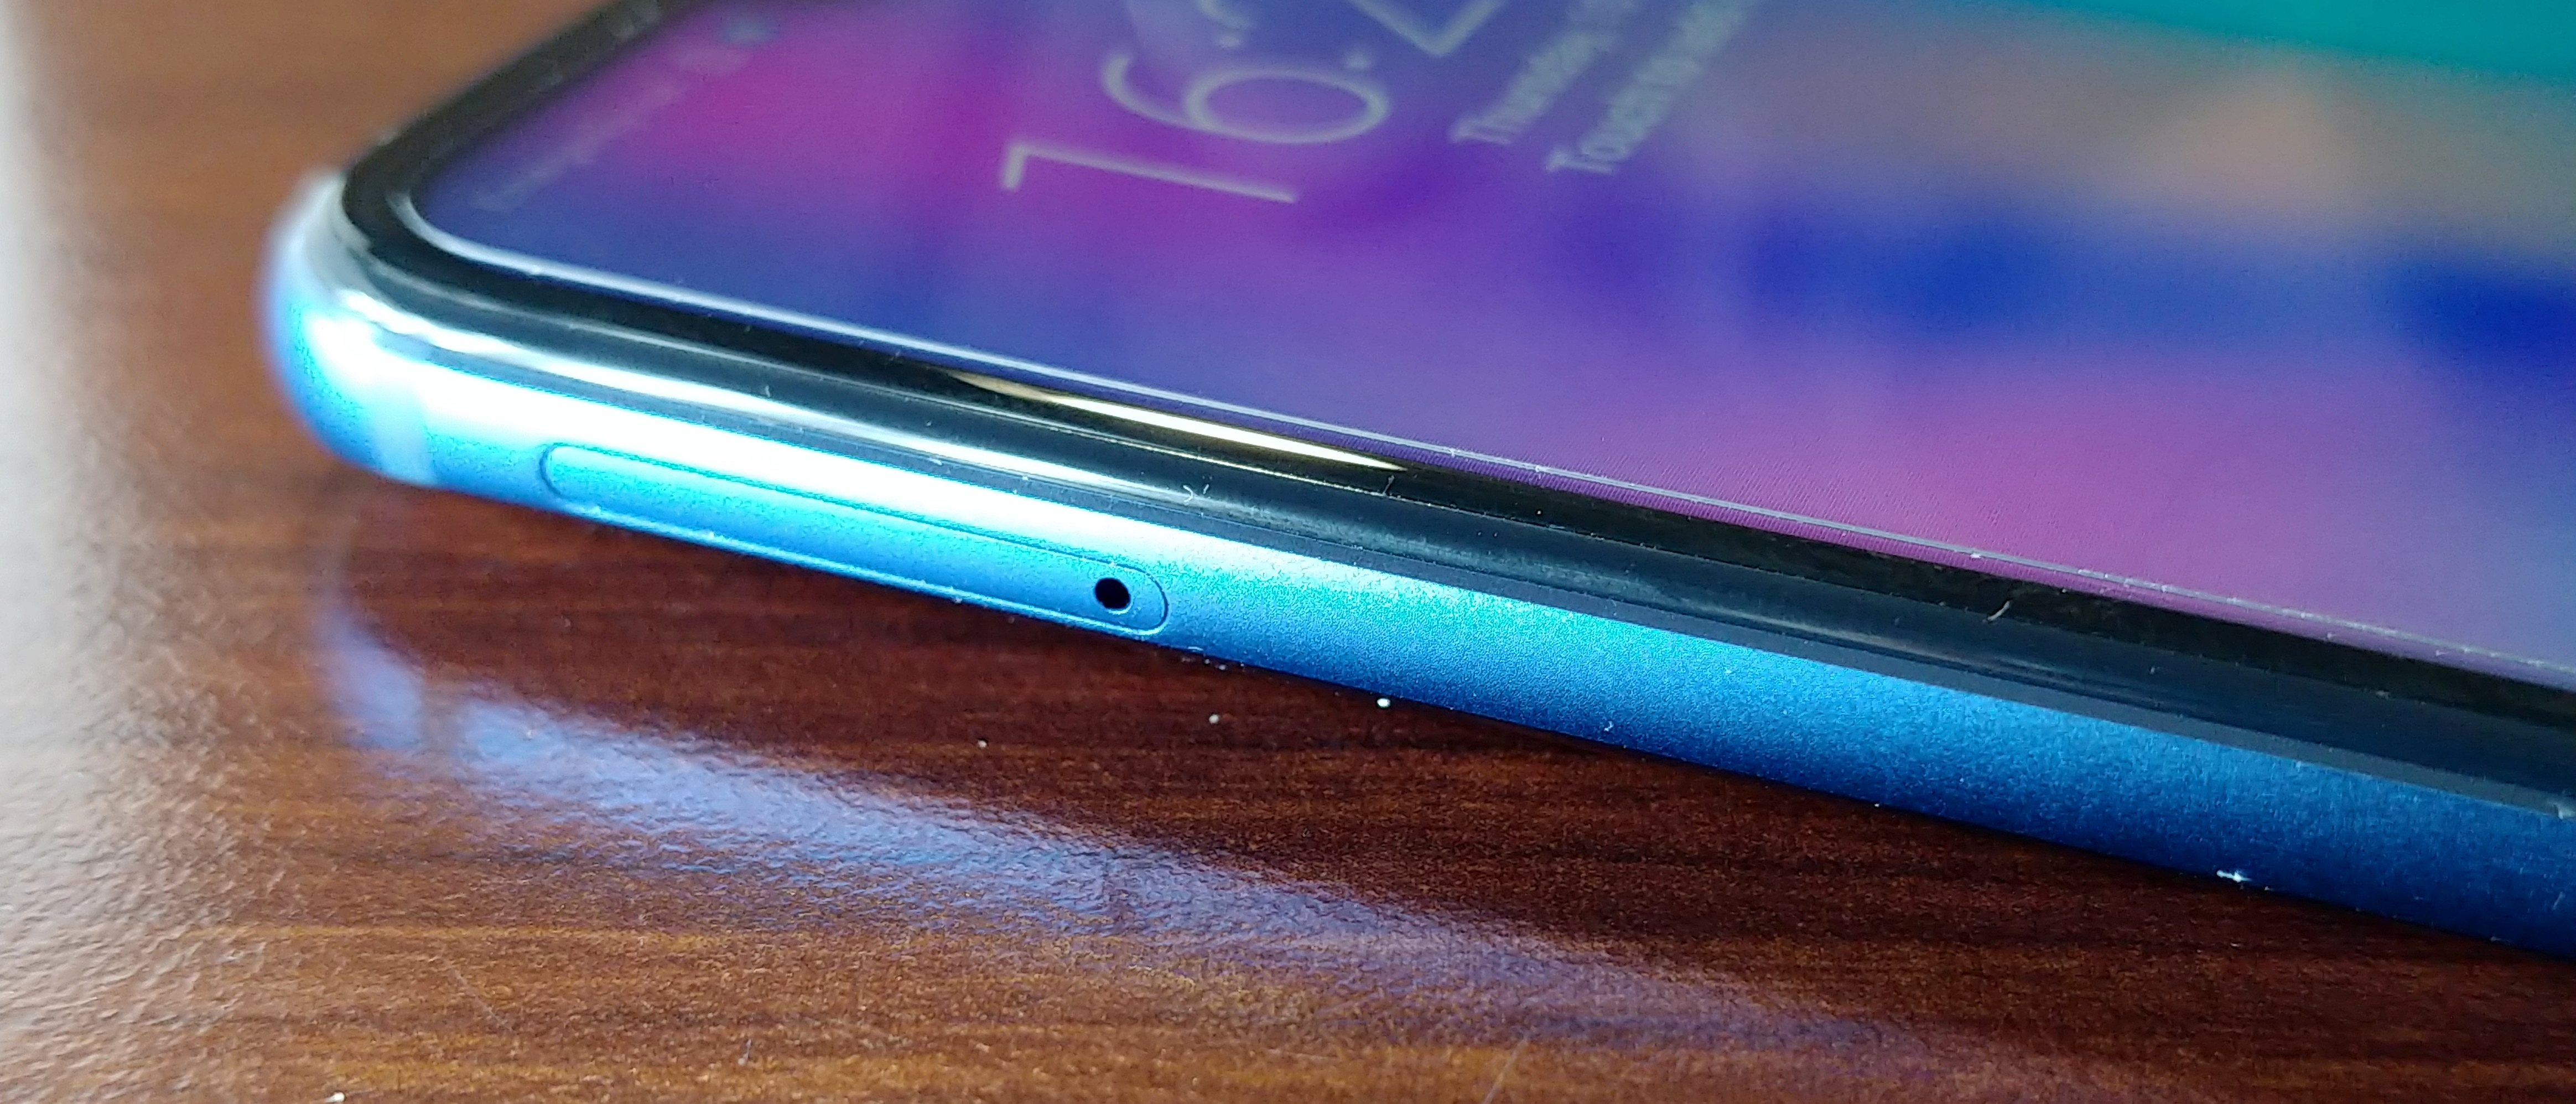 Honor 10 Launch and Hands On: Kirin 970, More AI, More Notch